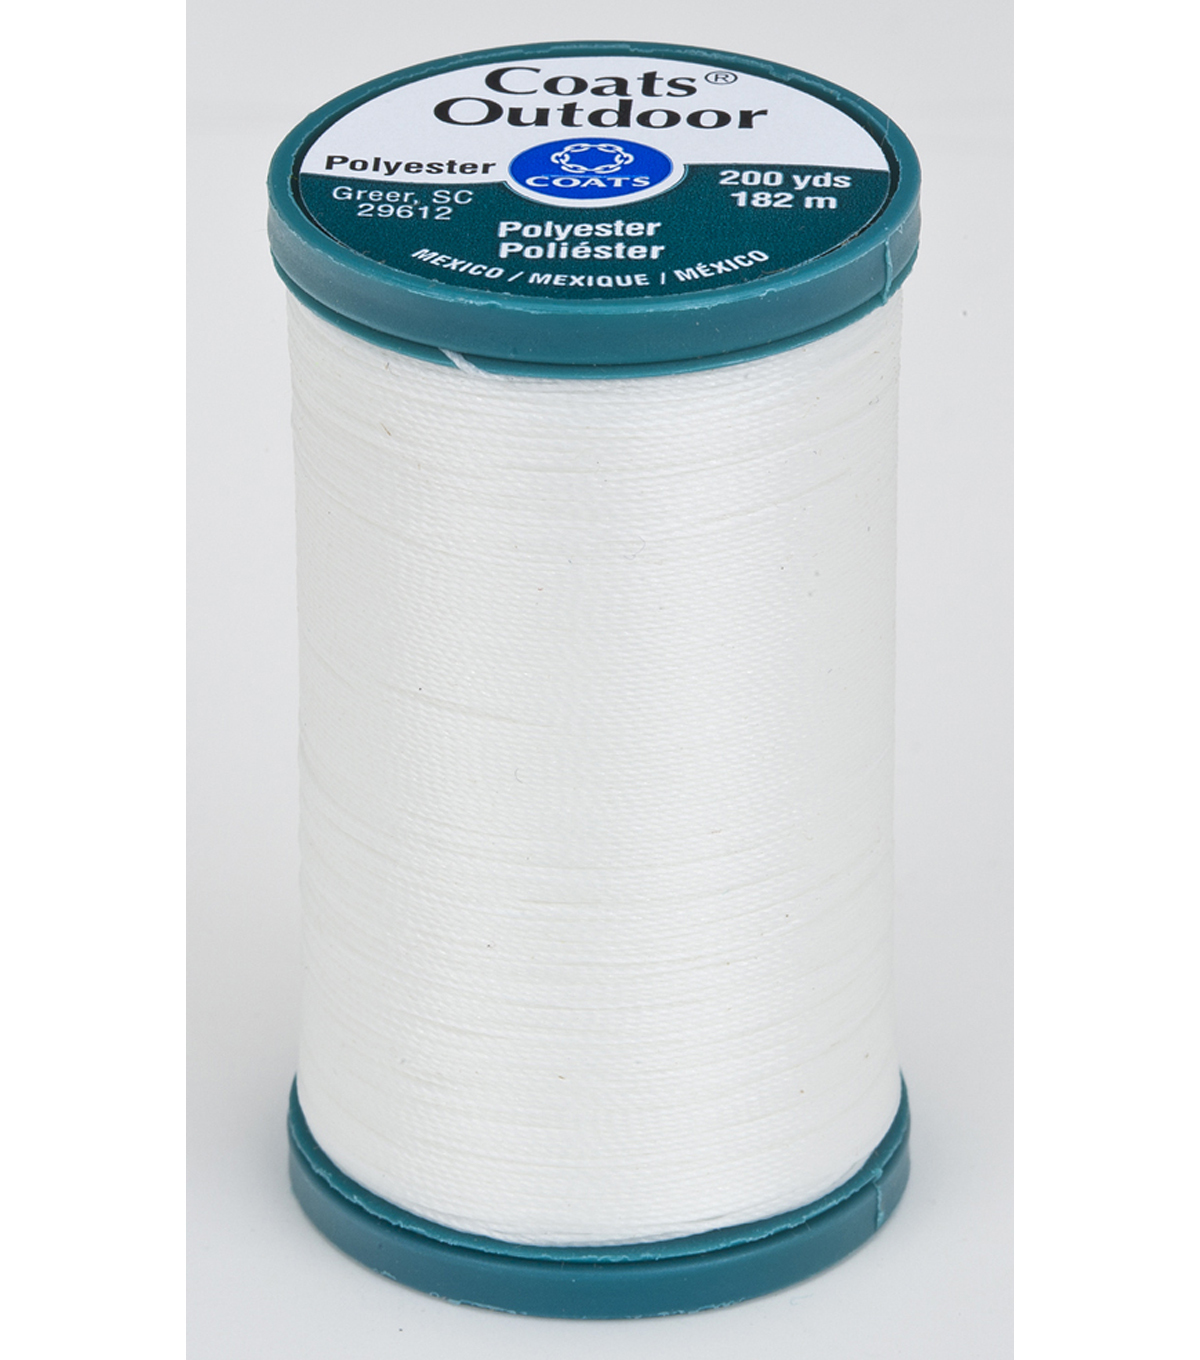 Coats & Clark Outdoor 200yd Thread, Coats Outdoor 200yd White